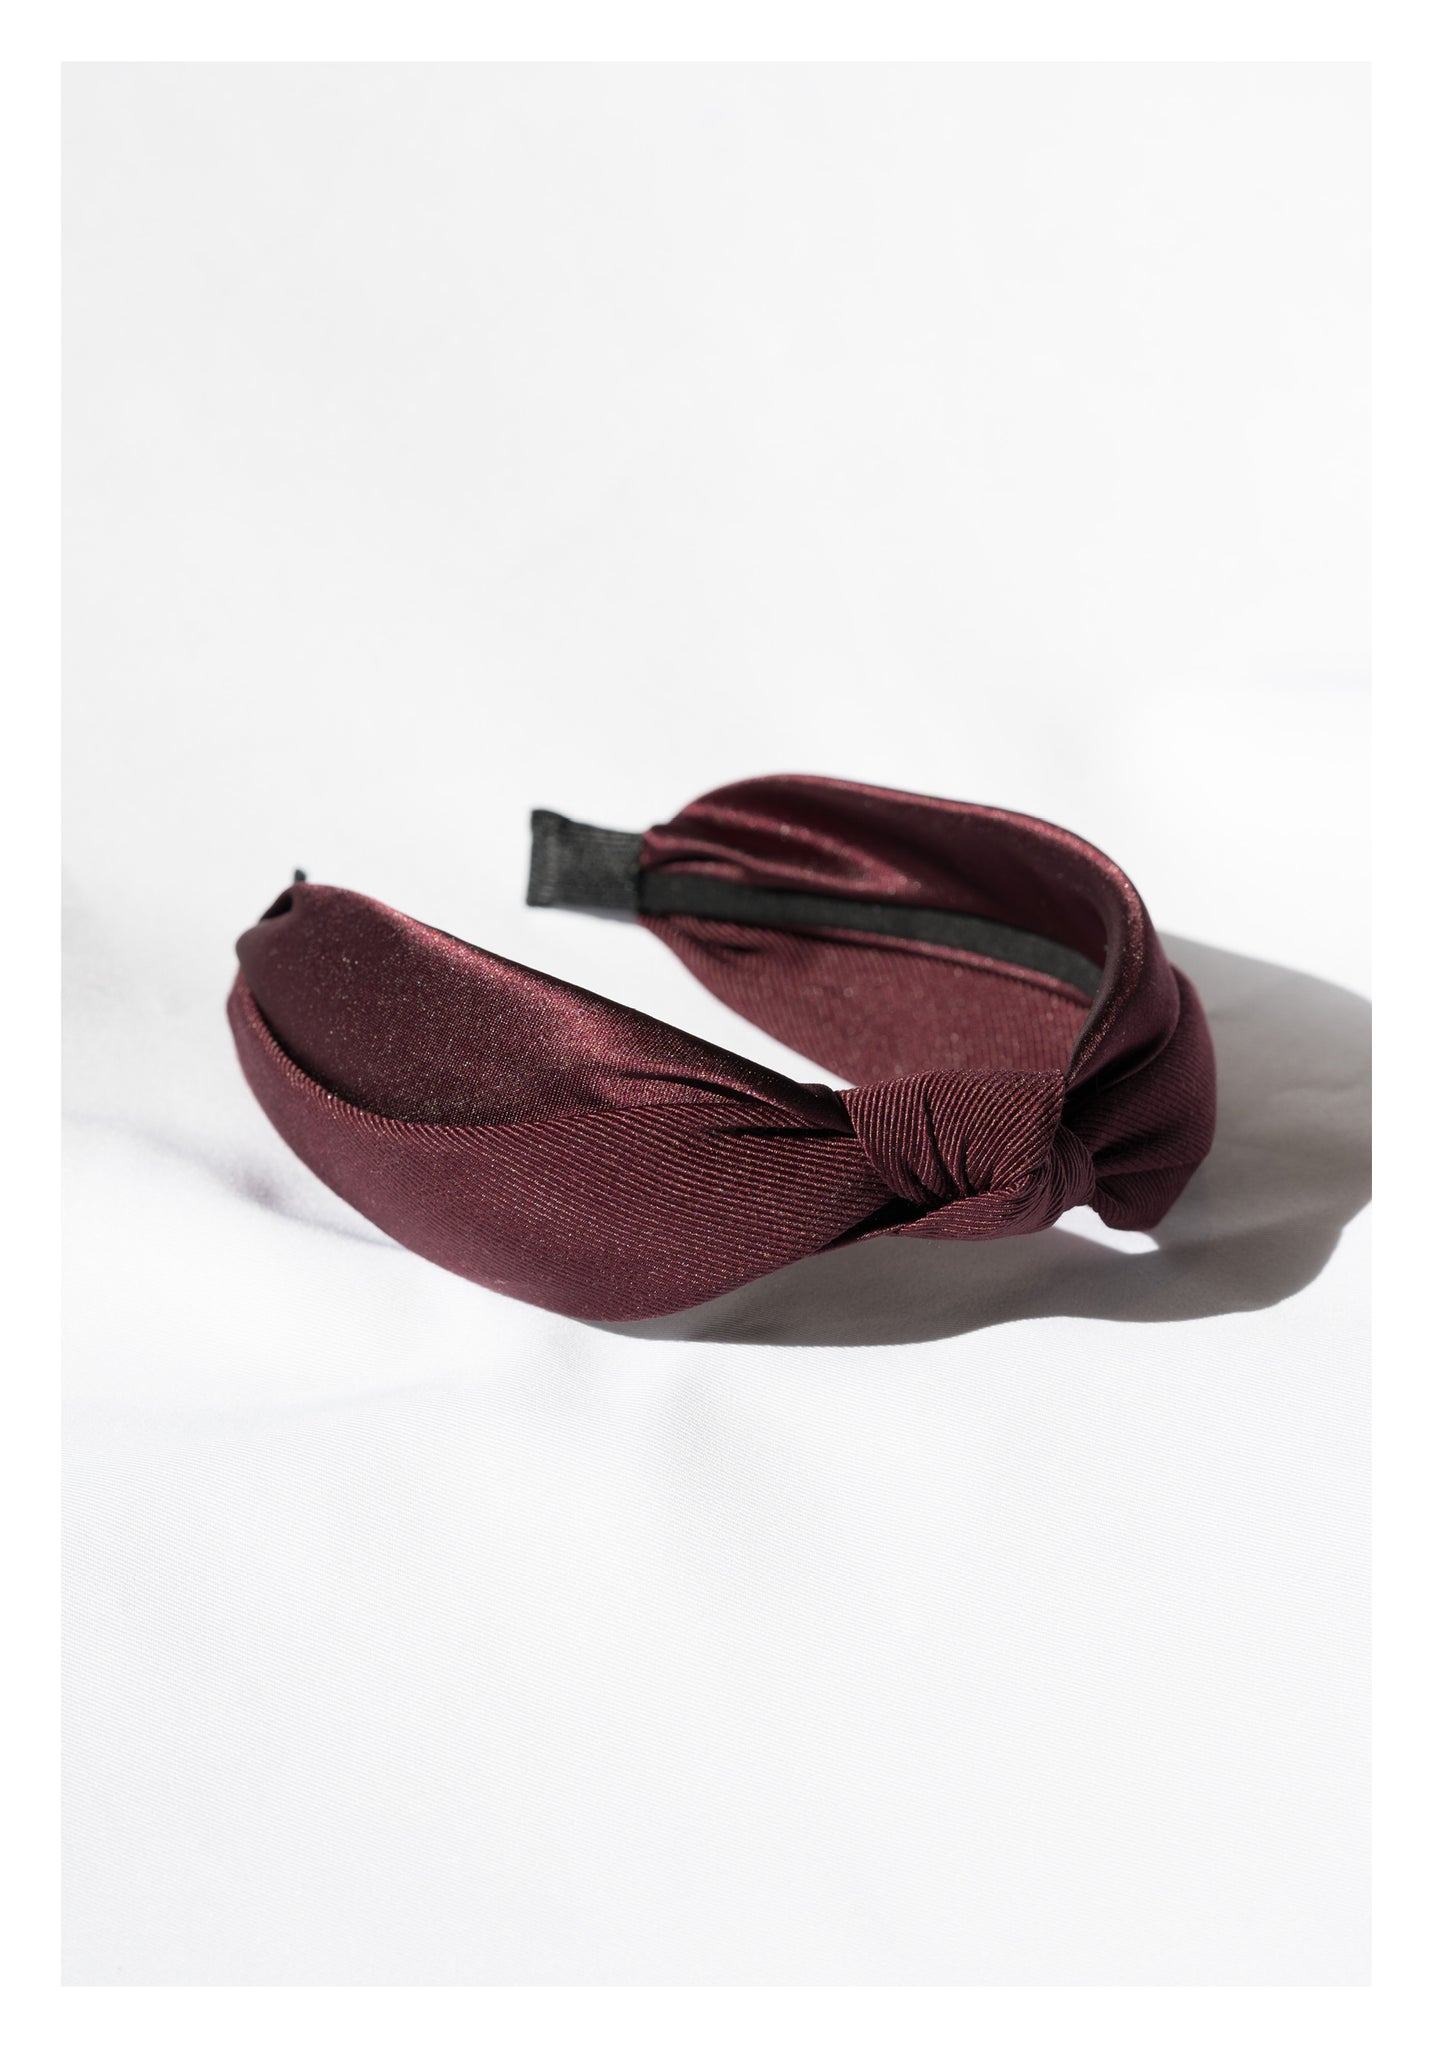 Mixed Satin Knot Wide Headband Wine - whoami